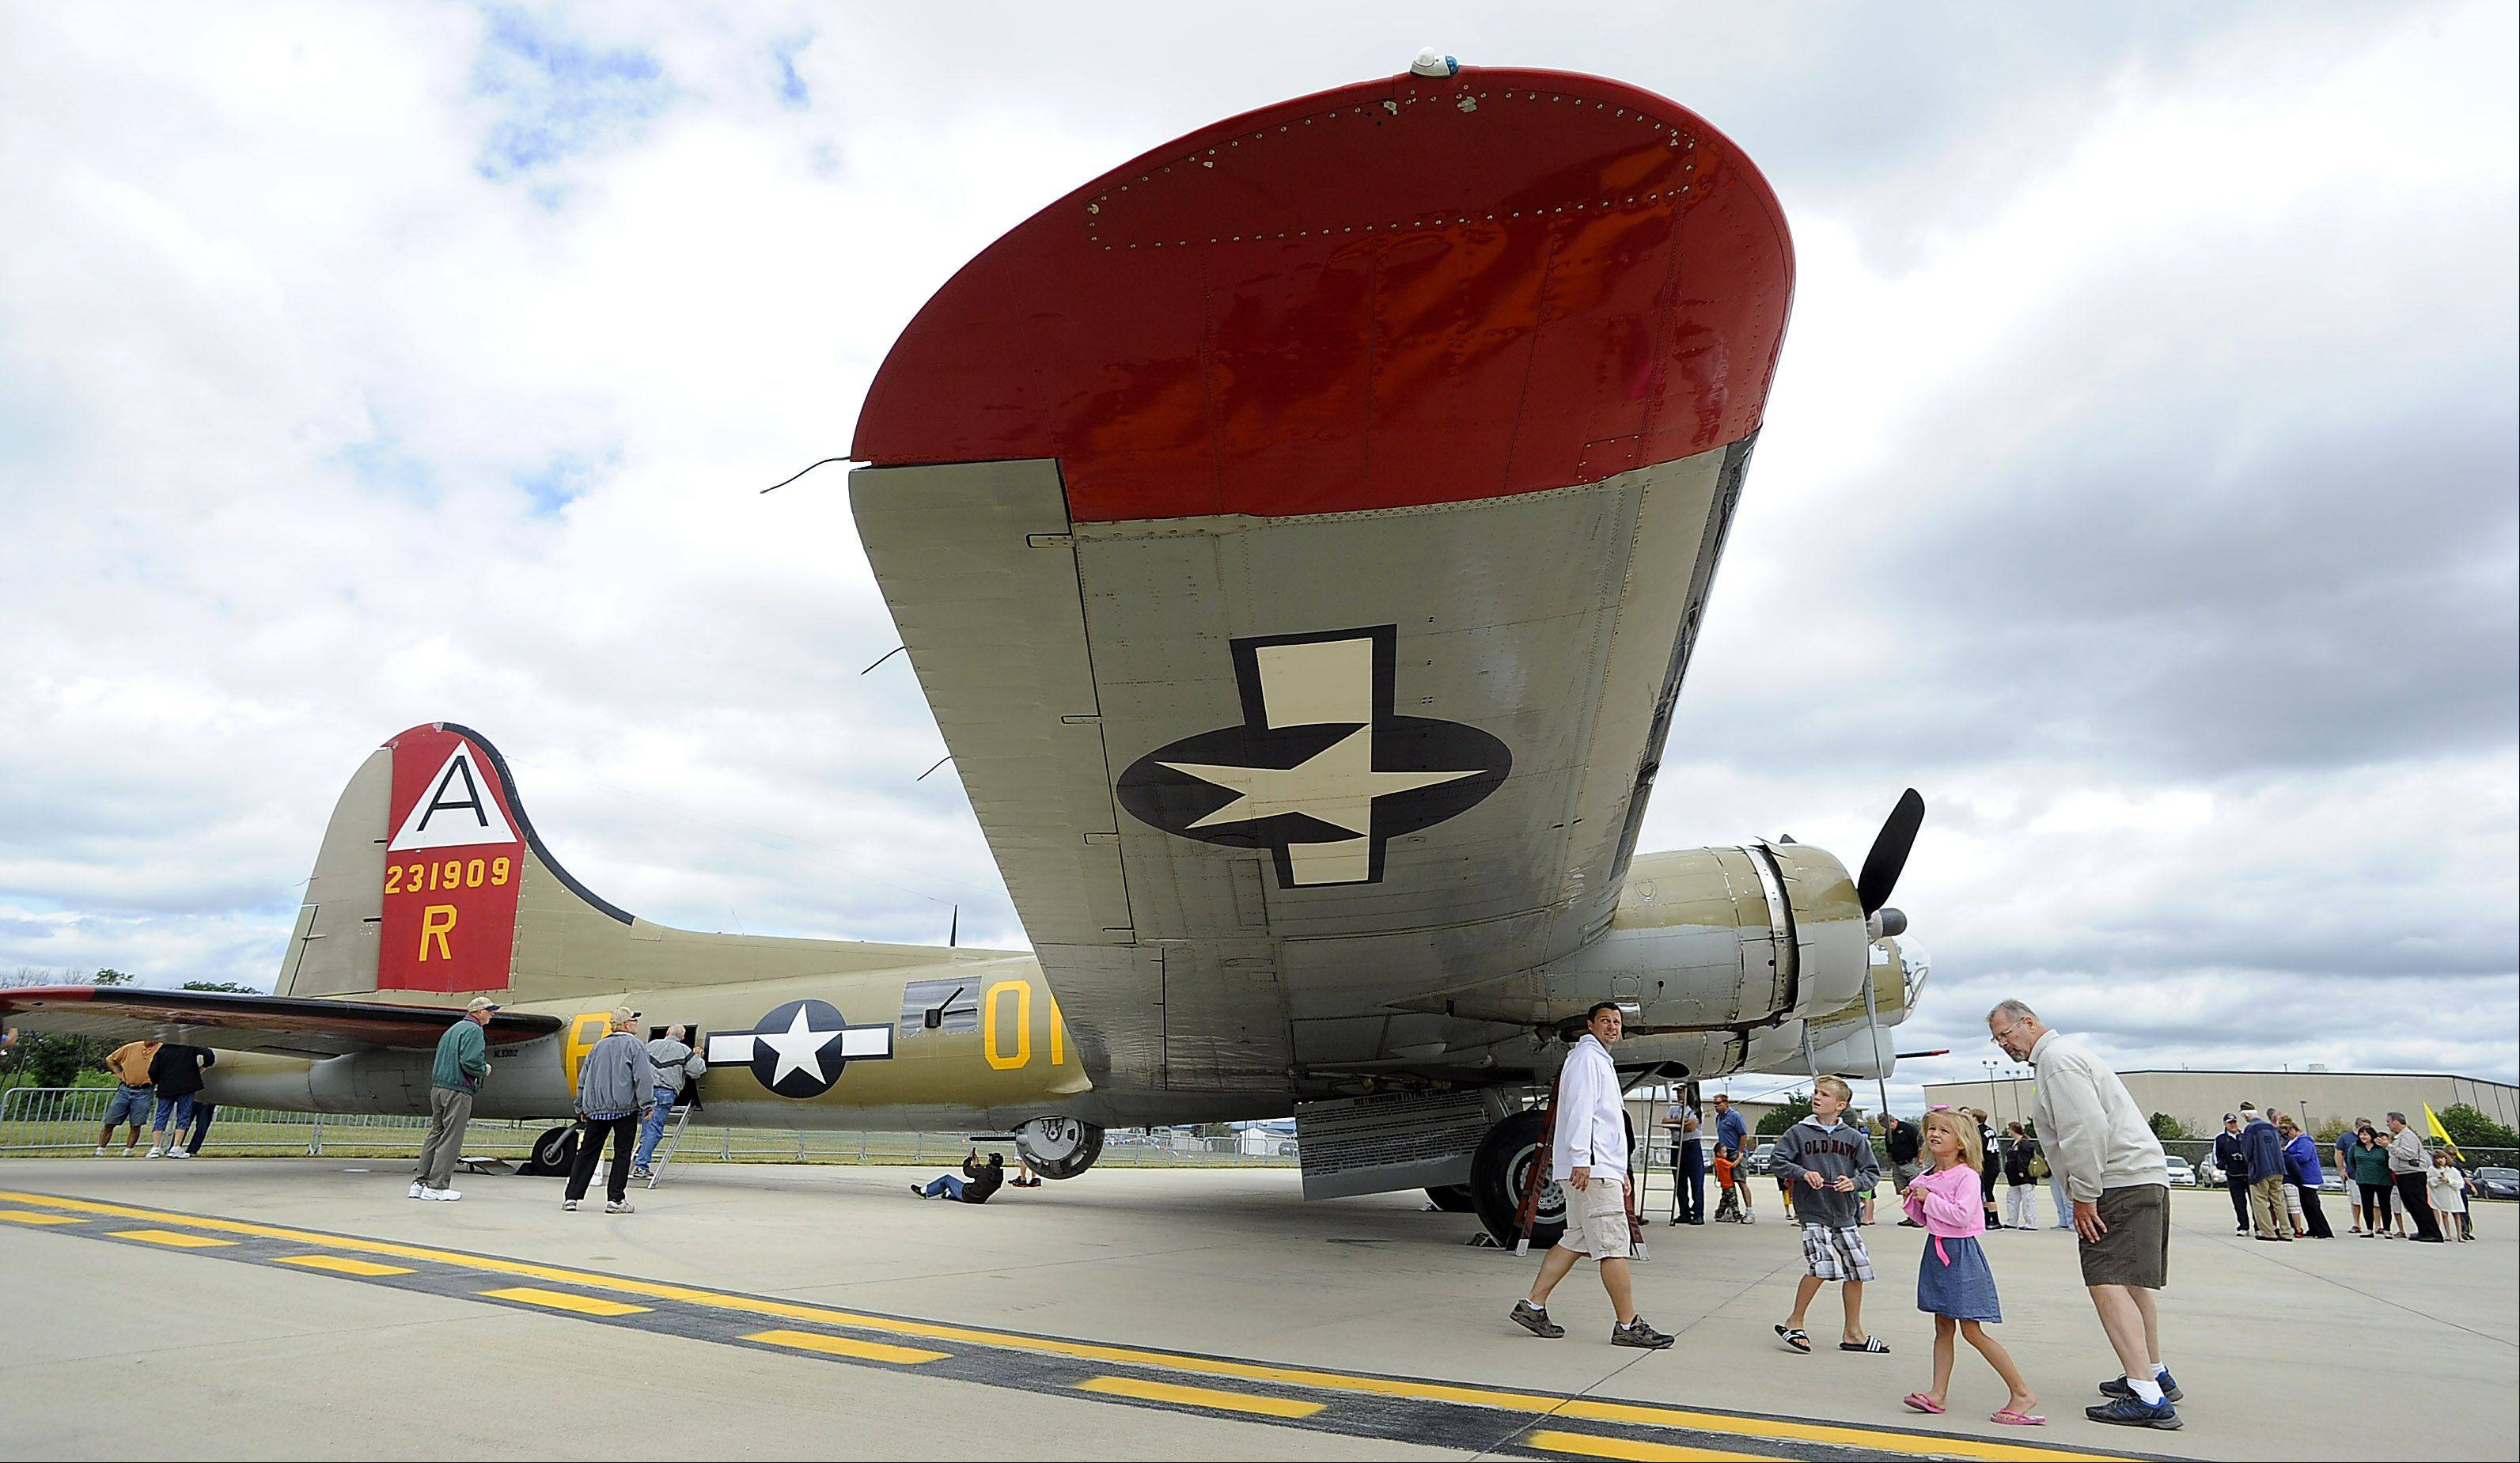 Allan Karg along with Jason Karg and his kids, Drew, 8 , and Ava, 5 , of Aurora check out the B-17 Flying Fortress which landed at Chicago Executive Airport on Saturday as part of the 2013 Wings of Freedom Tour.